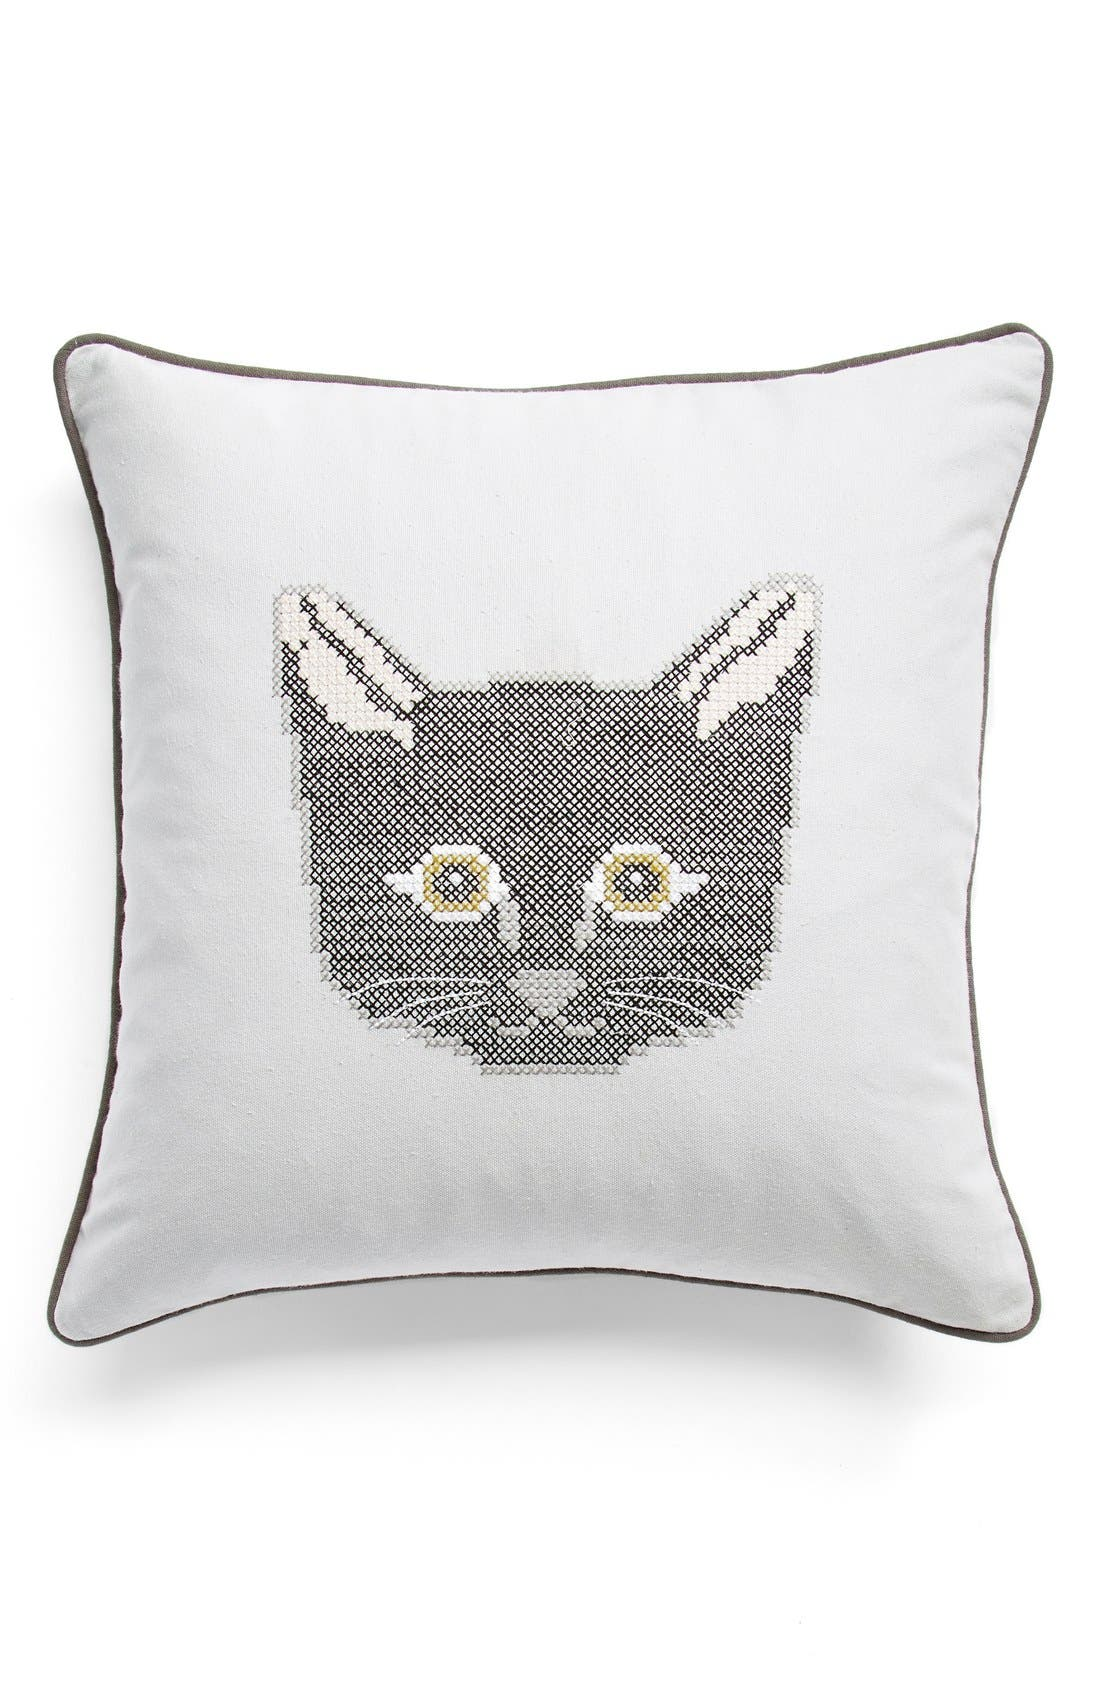 Alternate Image 1 Selected - Nordstrom at Home 'Alley' Accent Pillow